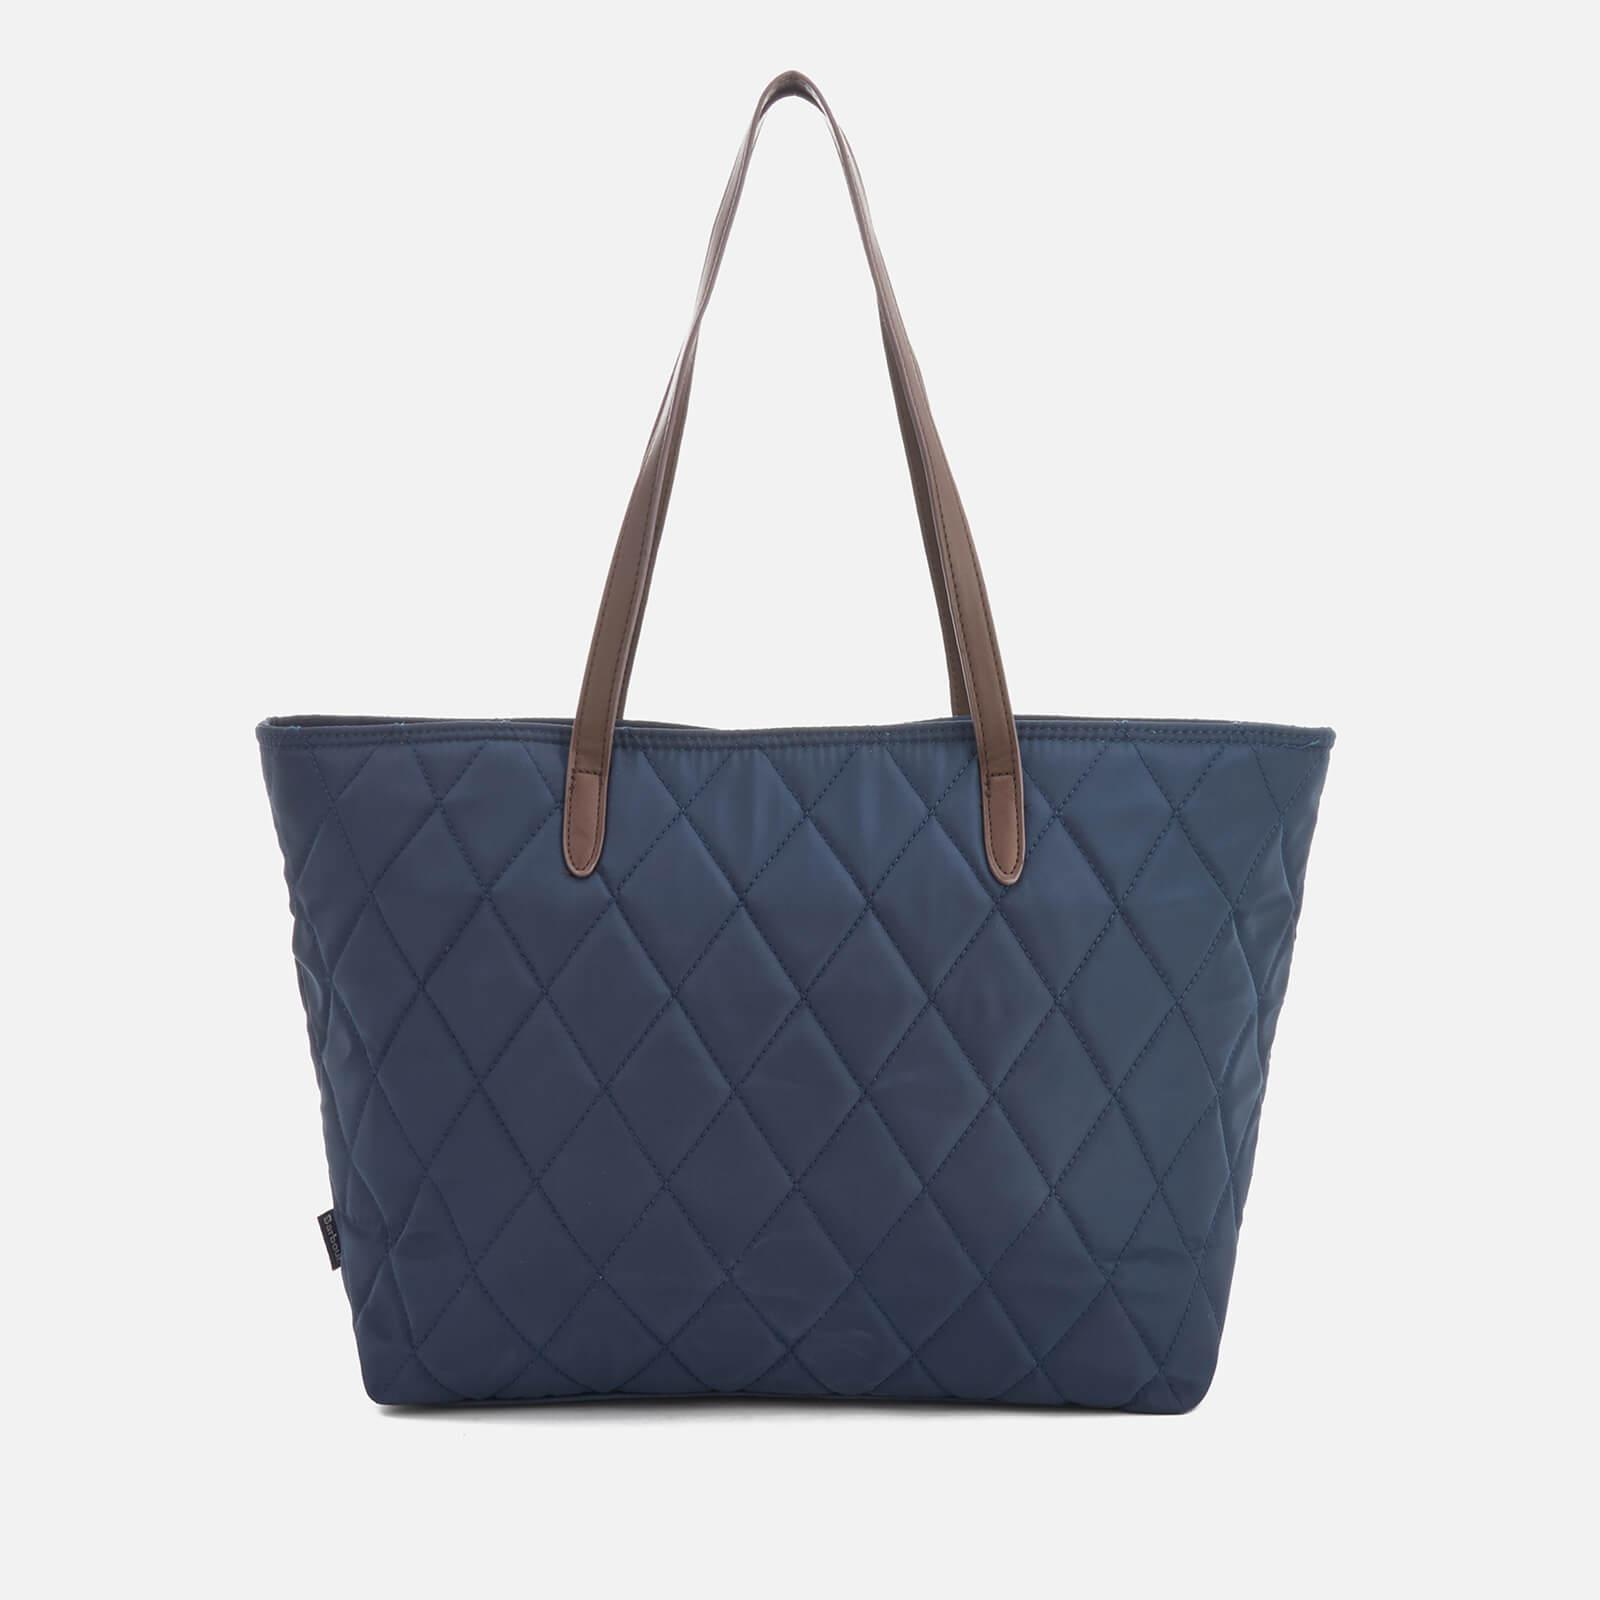 4c2d1841c76a Barbour - Blue Witford Small Tote Bag - Lyst. View fullscreen